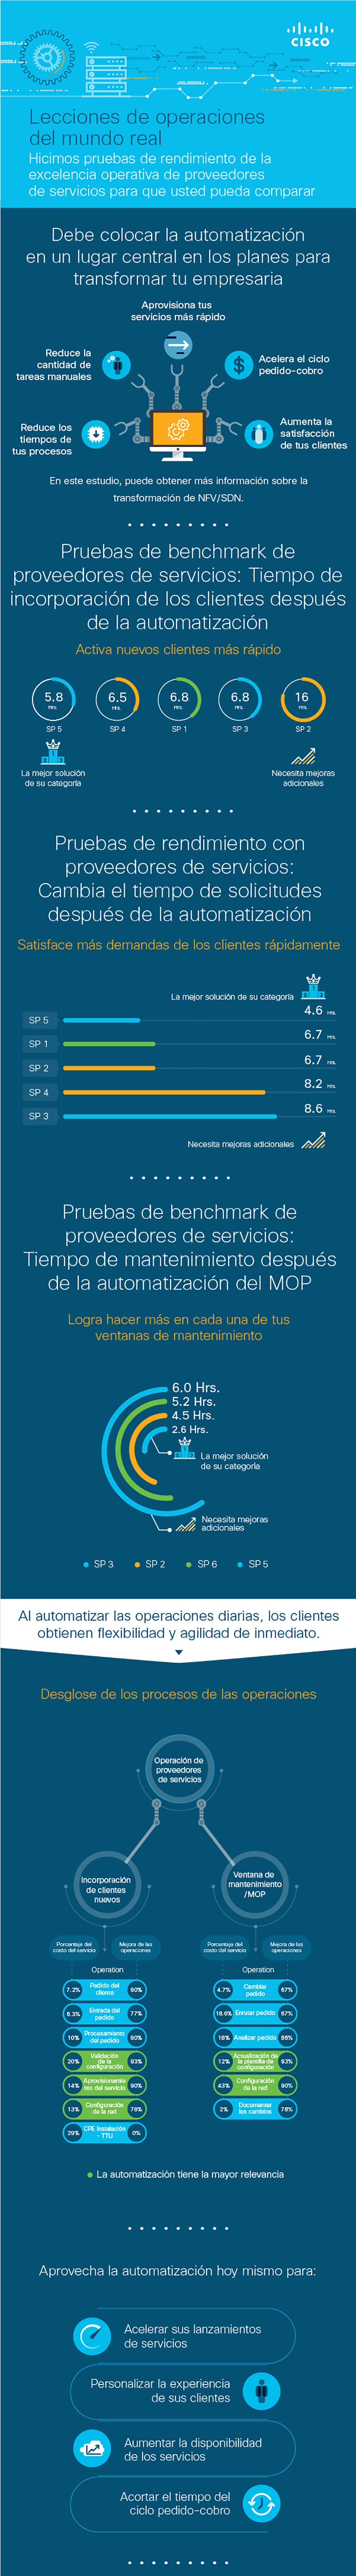 benchmarking-sp-operational-excellence-latam-banner-1